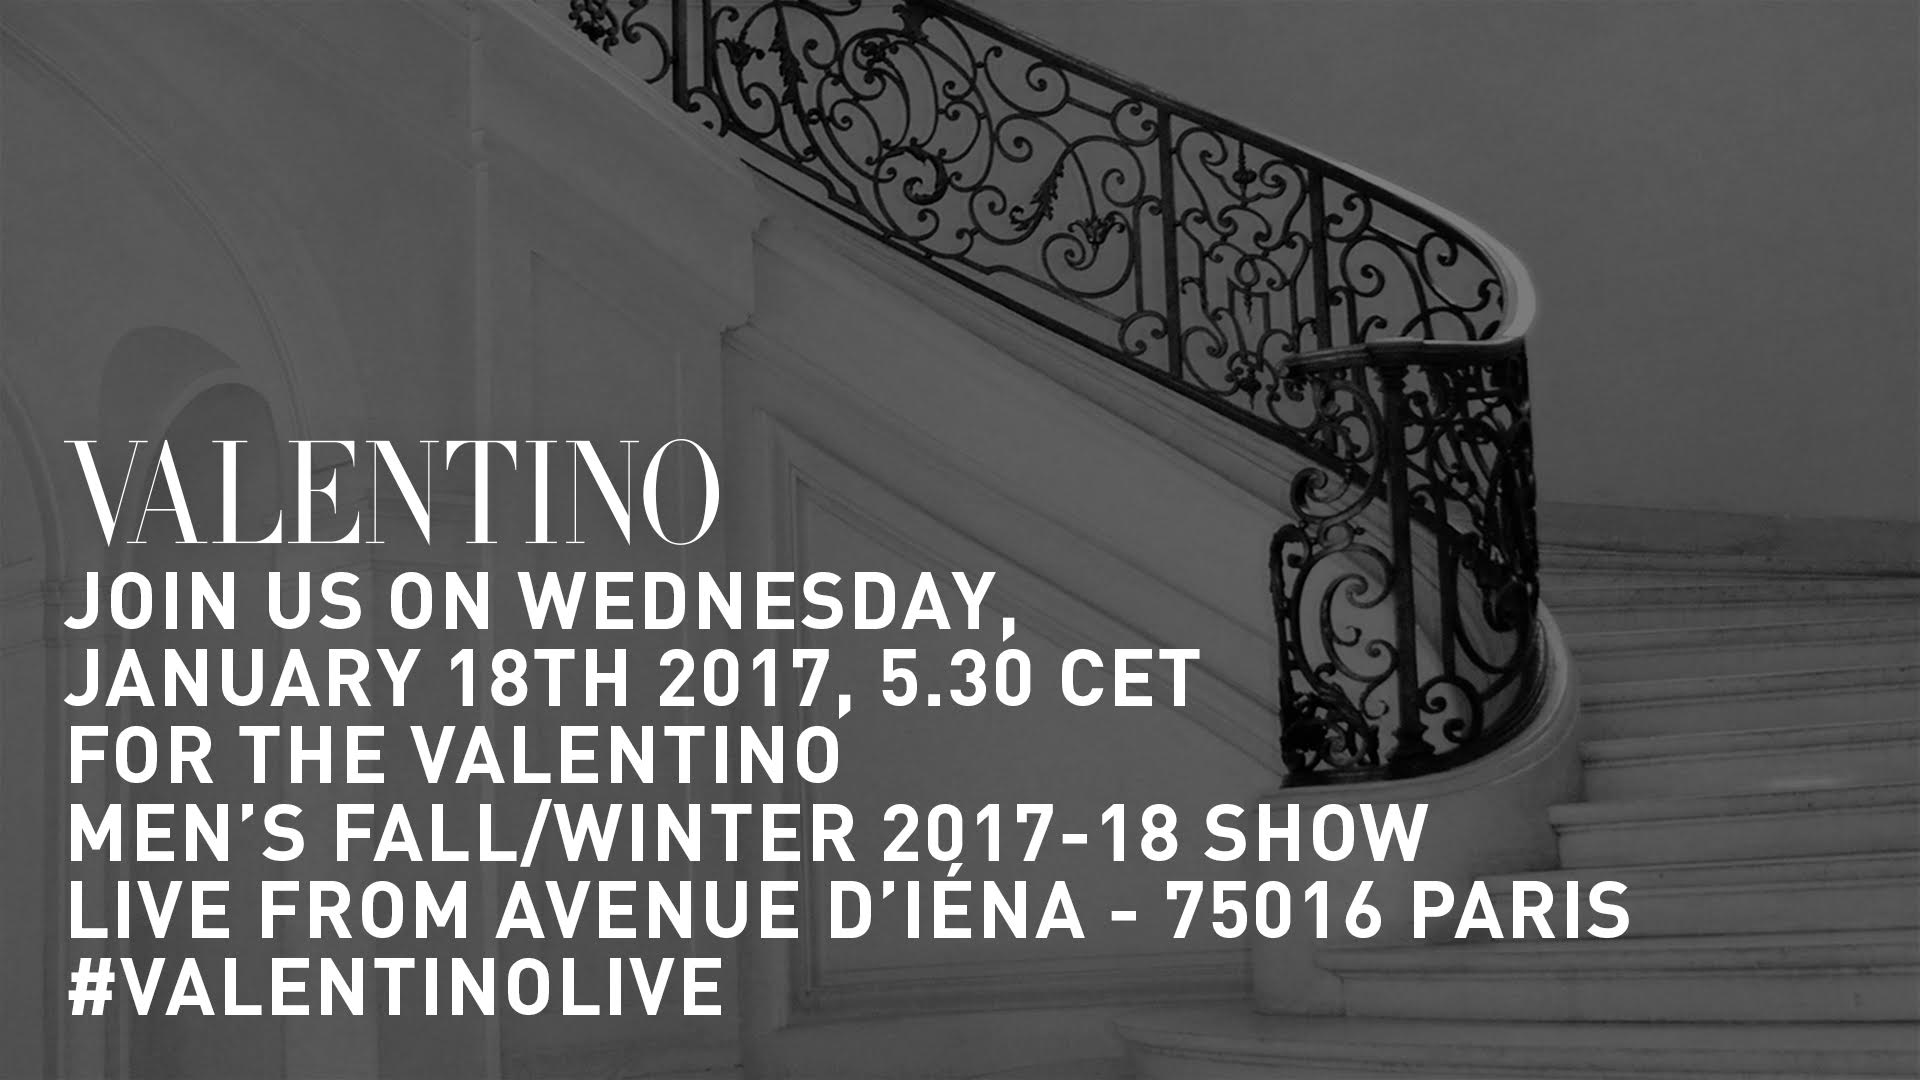 Valentino Fall Winter 2017-18 Men's Fashion Show Live Streaming Paris